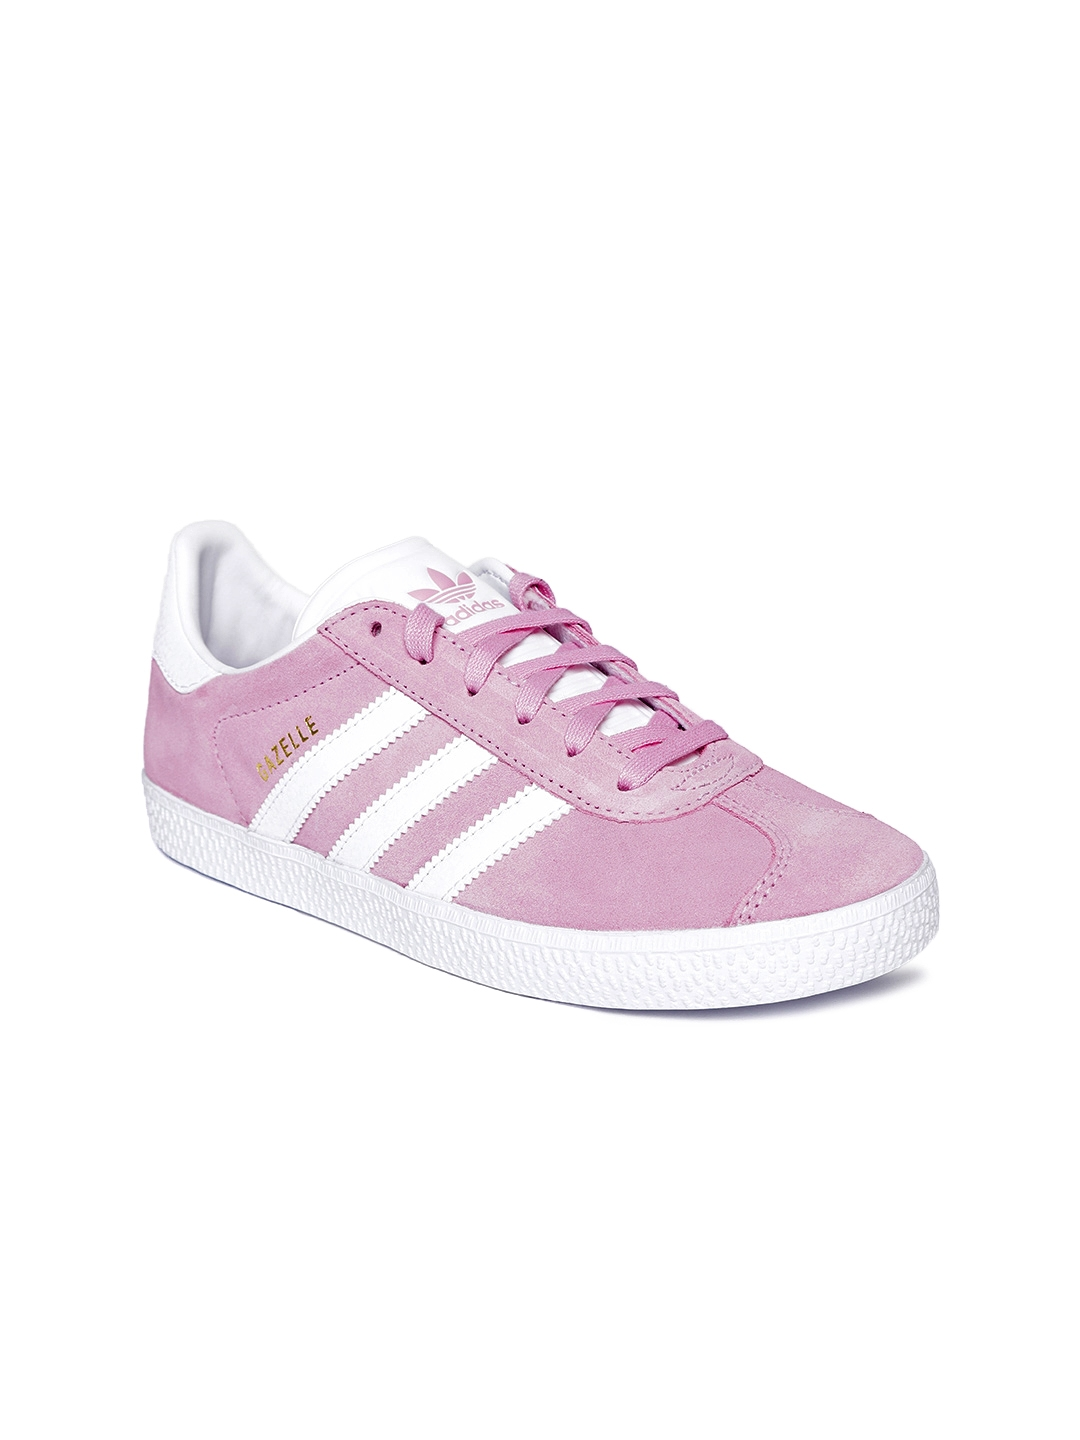 b3dddc5130 Buy ADIDAS Originals Kids Pink Gazelle Suede Sneakers - Casual Shoes ...